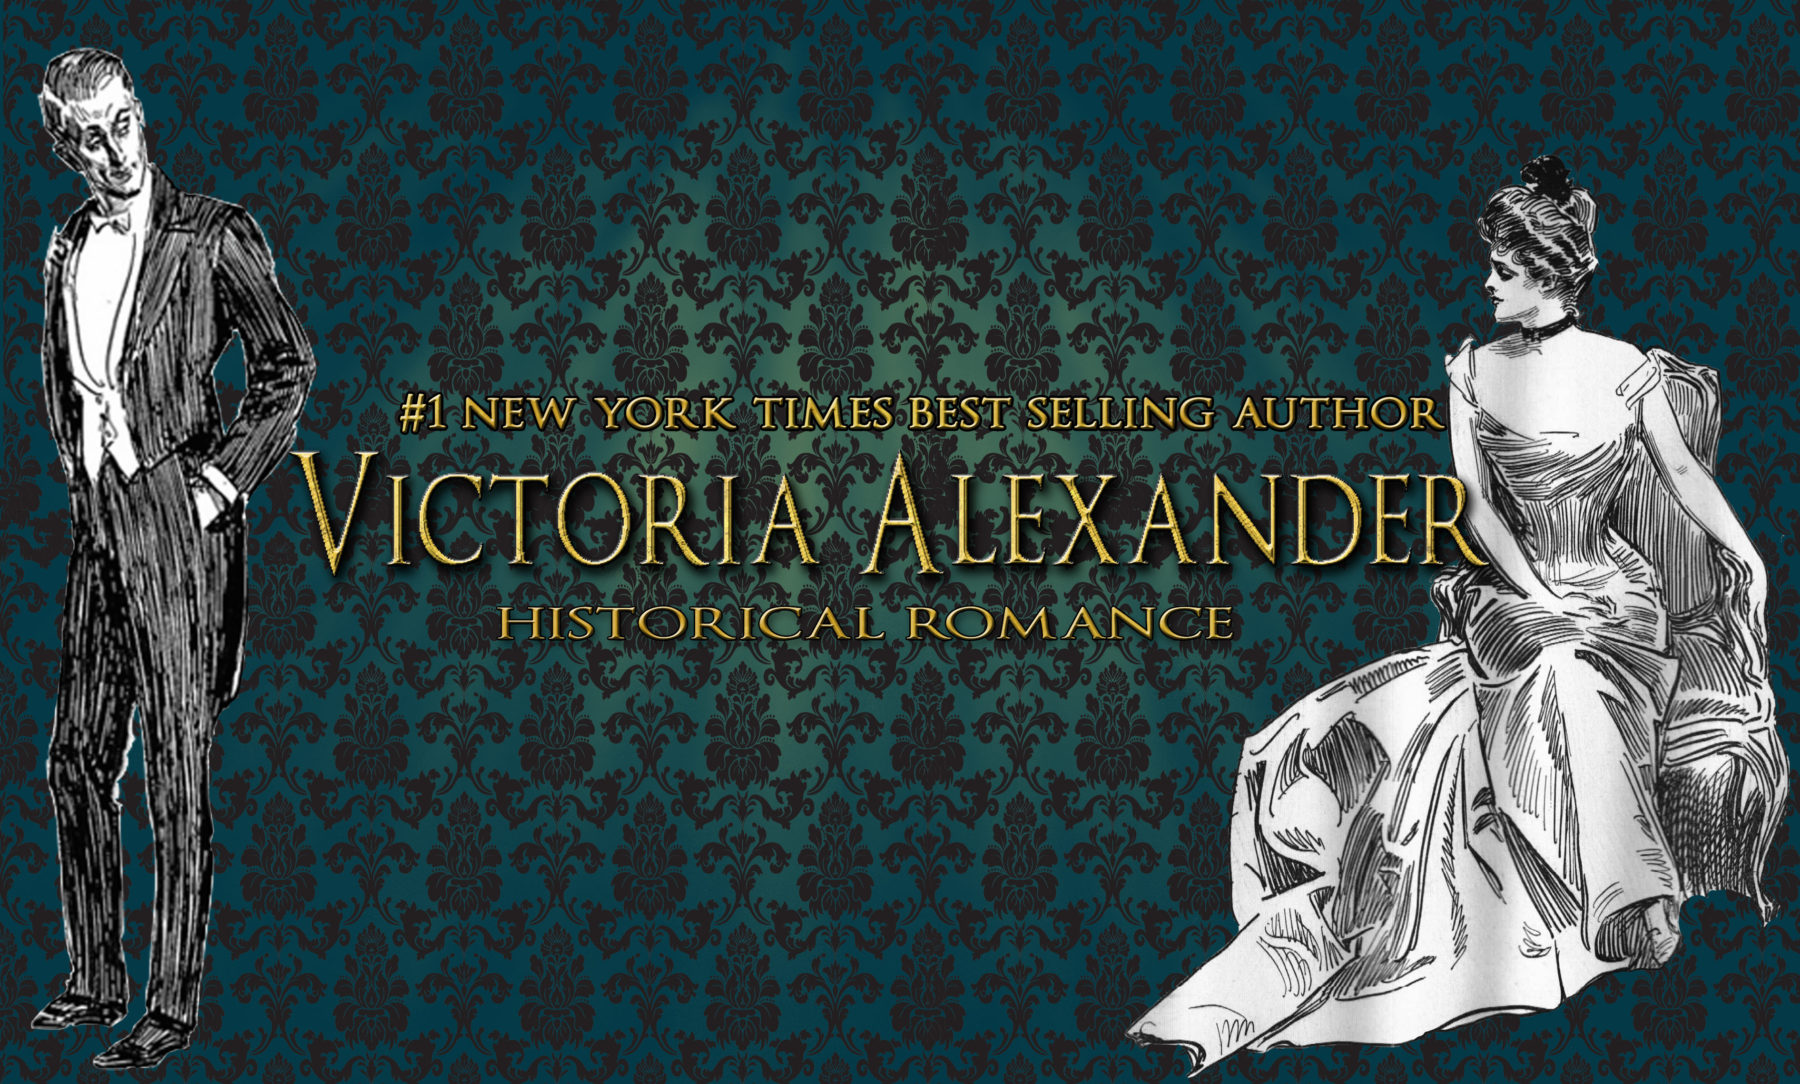 Victoria Alexander | #1 New York Times Best Selling Author of Historical Romance Novels.